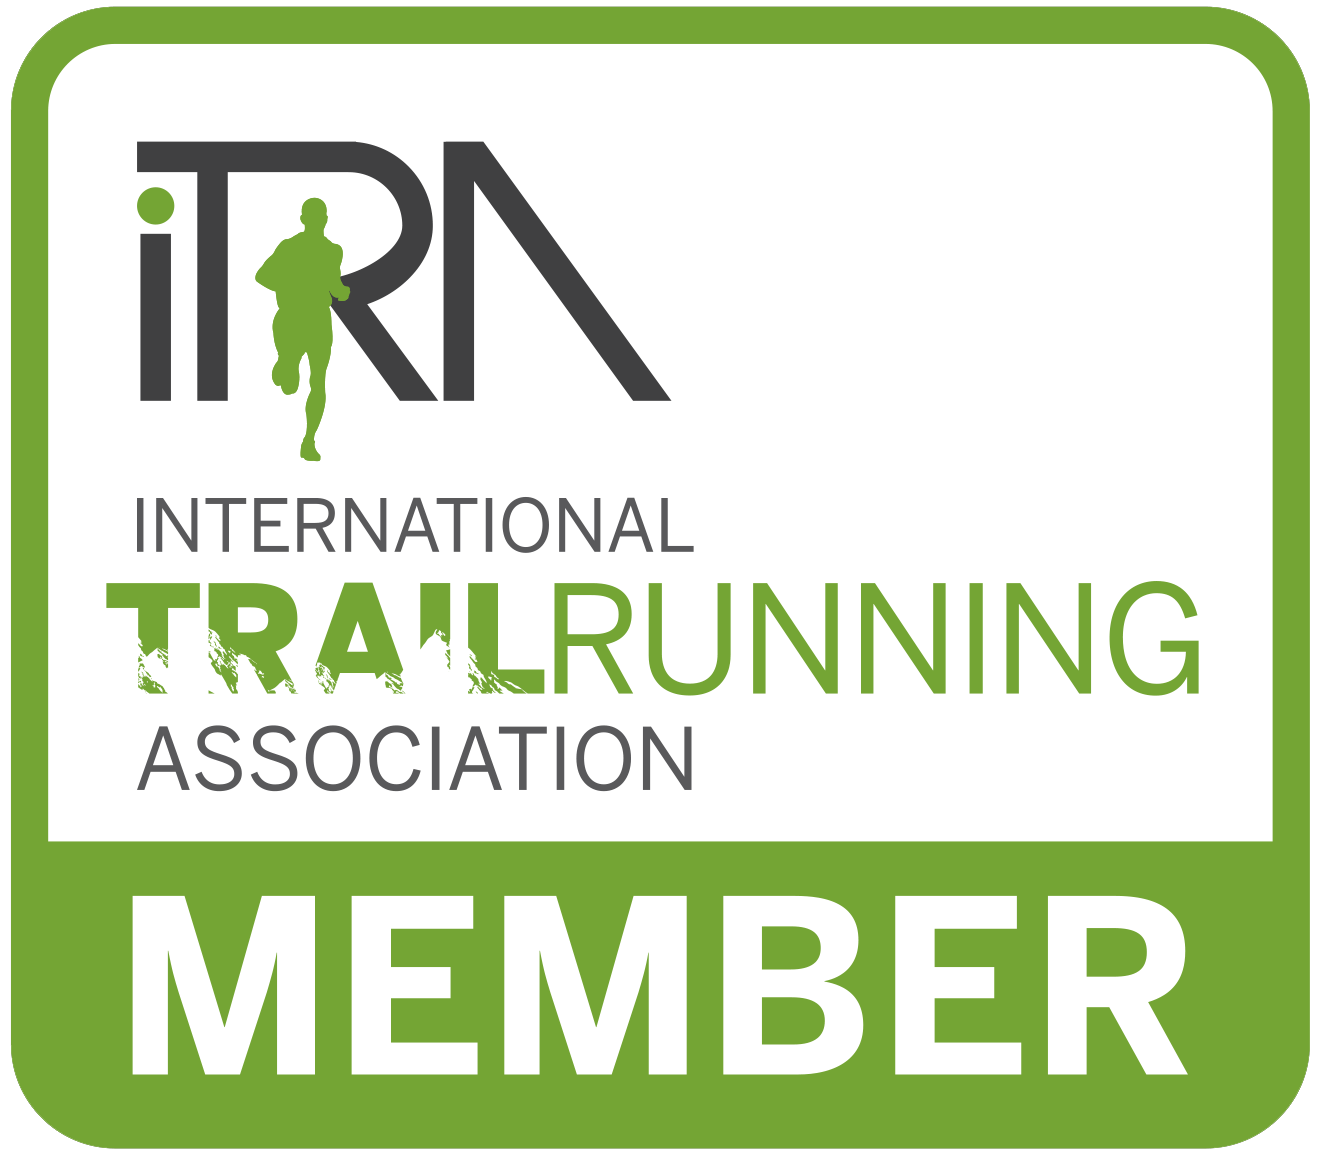 International Trail-Running Association